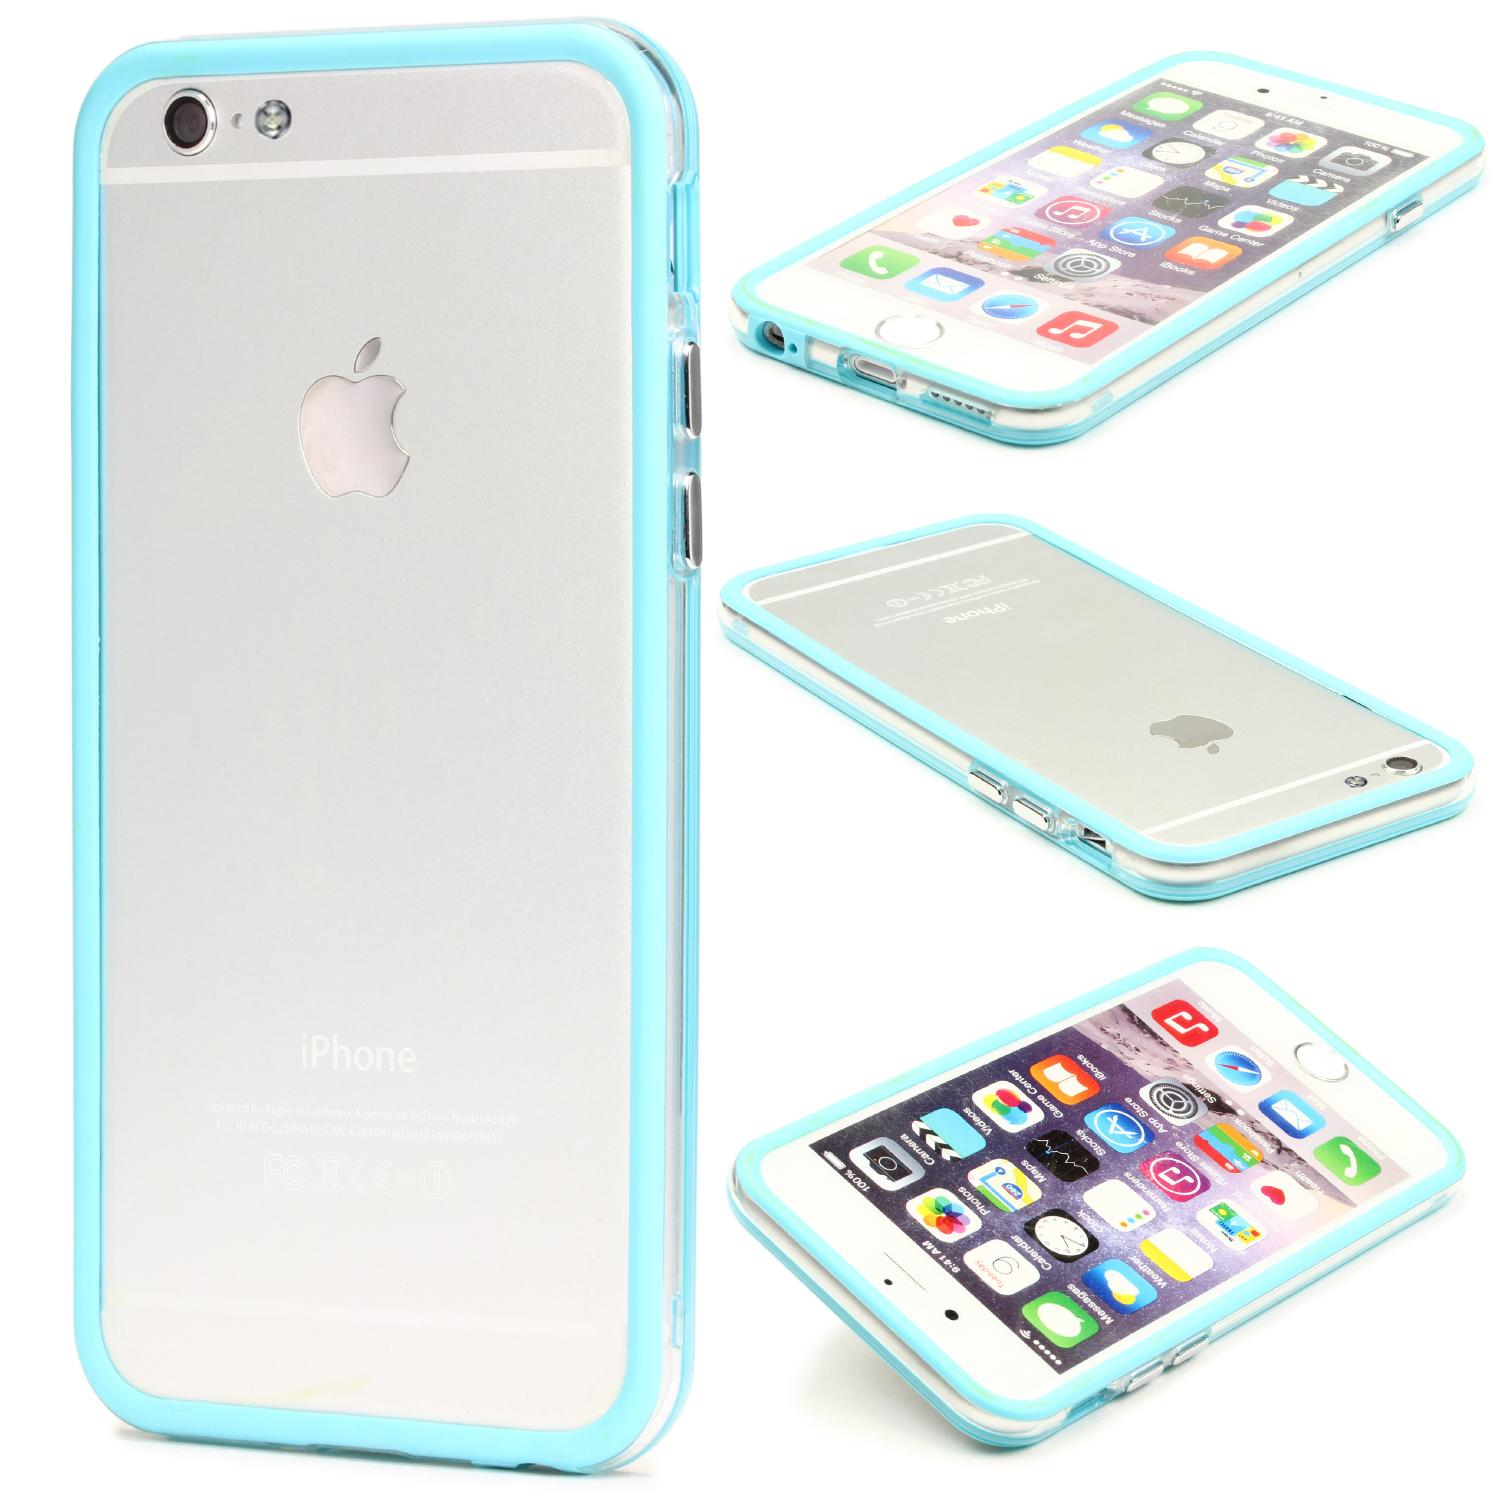 Urcover Apple iPhone 6 Plus 6s Plus Schutz Hülle Back Case Bumper Cover Etui Bumper iPhone 6 Plus 6s Plus iPhone Apple